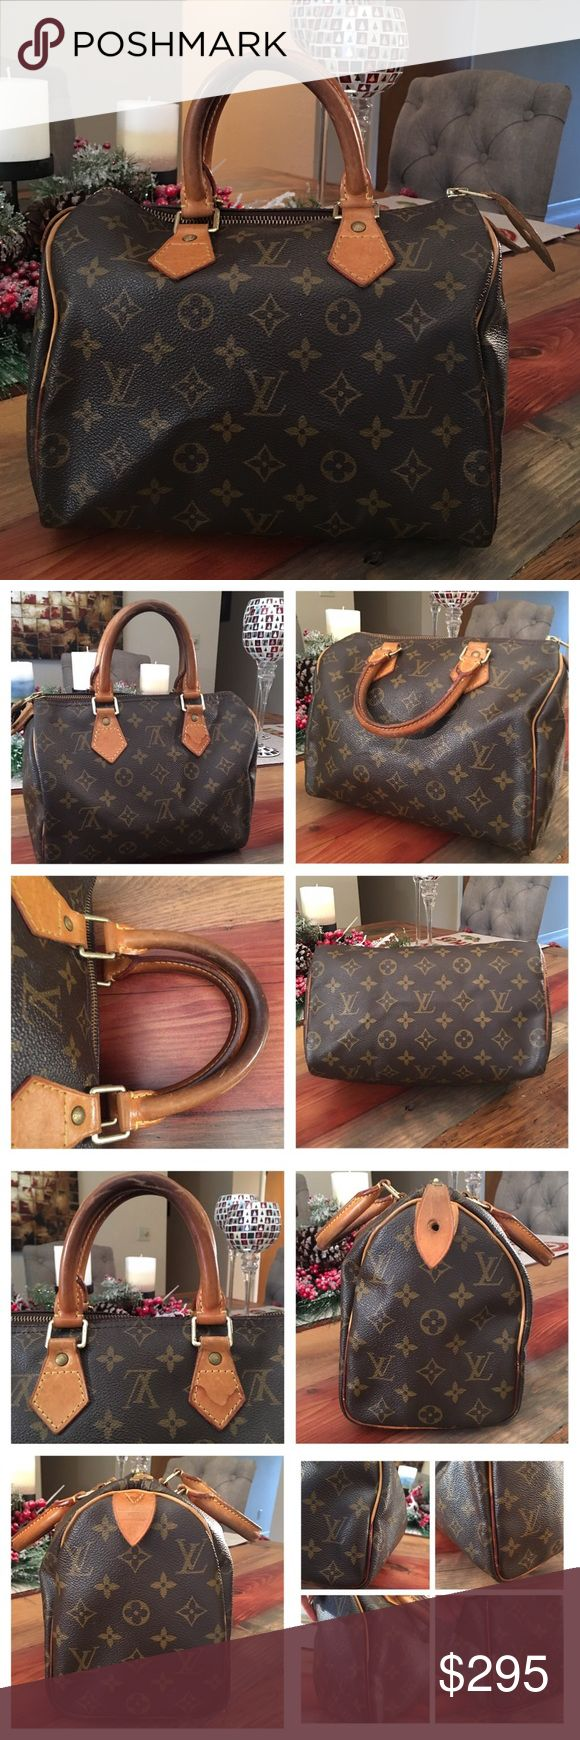 """💗HOLD FOR CRISTINA💗AUT LOUIS VUITTON SPEEDY 25 100% Authentic Louis Vuitton Speedy 25. This is a vintage bag with signs of use but tons of life left ! Monogram Canvas is in good condition no scratches or cracks. Picture 3 shows the corners, some wear, scuffs but no exposed piping 👍🏻 Handles have turned into a dark patina and have scratches but no cracks. Pic 3 shows a stain in a part of the leather. Zipper works properly.  Inside and pocket is clean. Made in France. W9.84""""x H7.48""""…"""